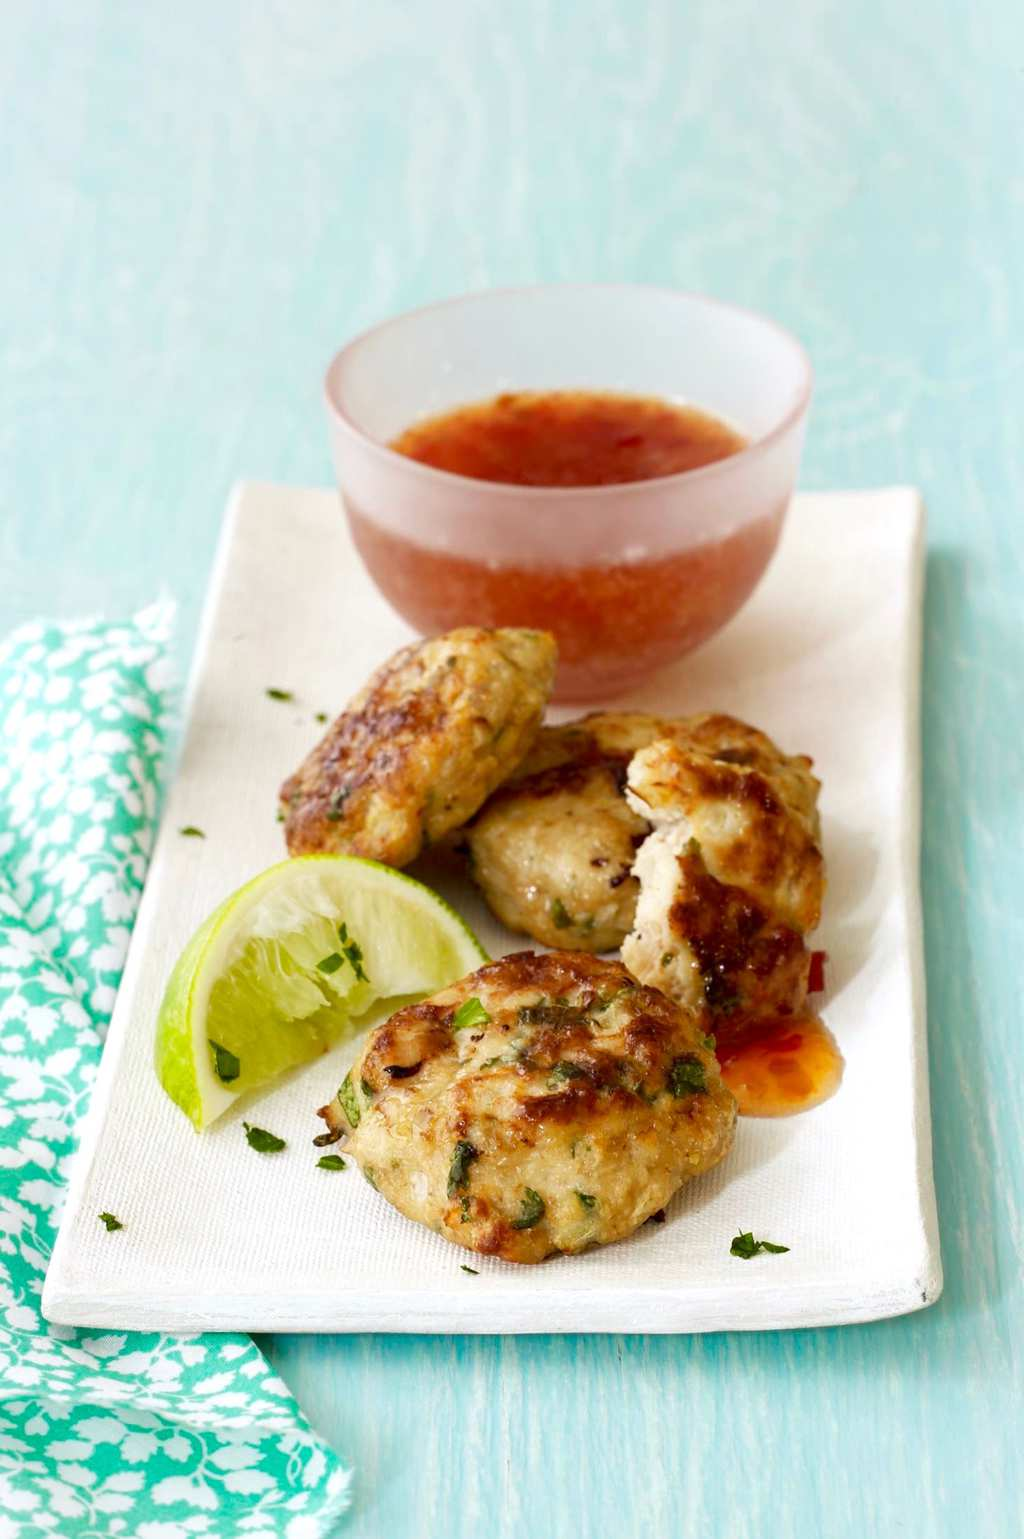 Ginger Thai Chicken Patties with sweet chili sauce on white plate with mint green background